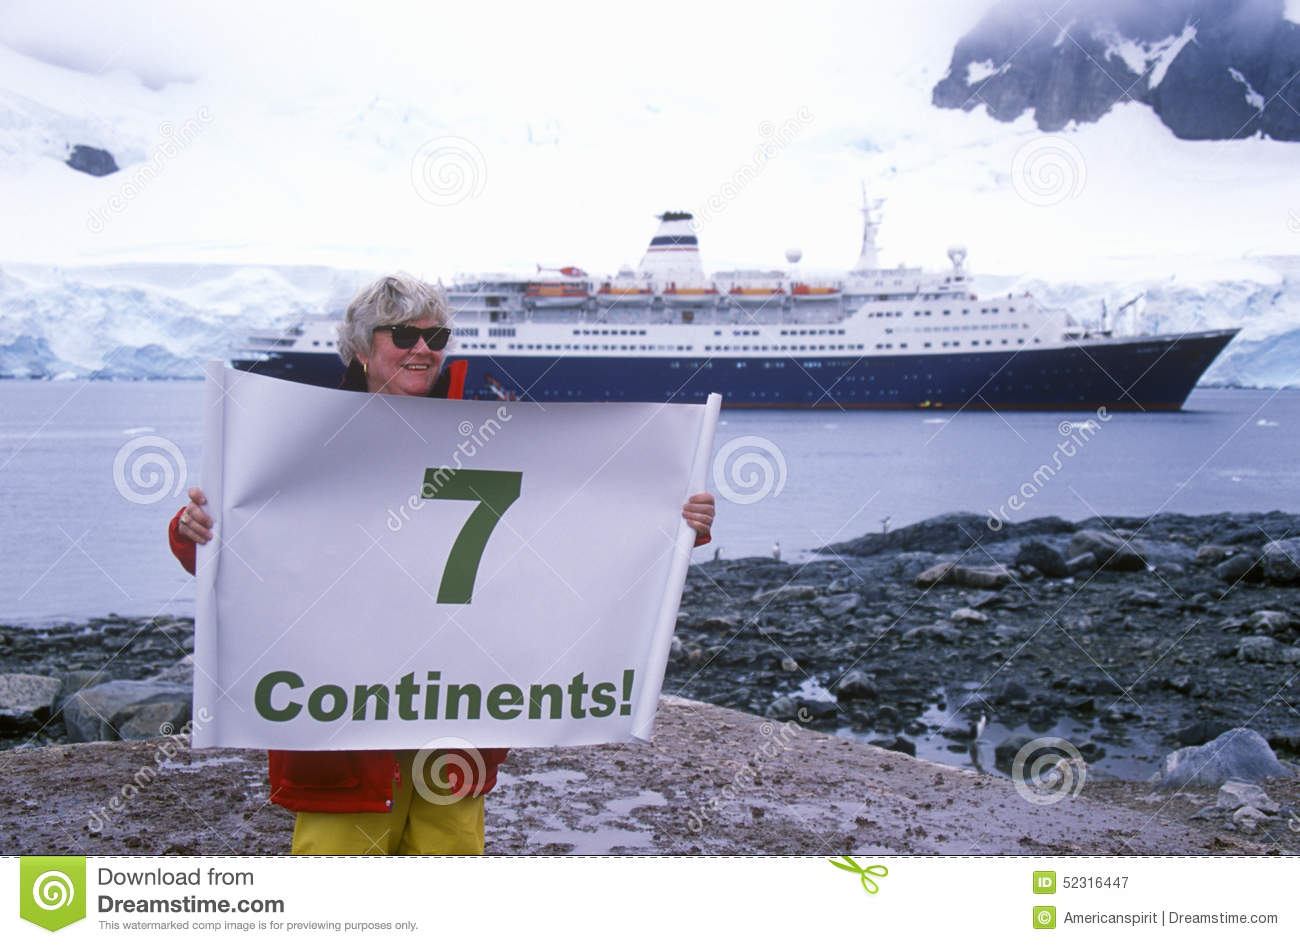 Ecological tourist from cruise ship Marco Polo with Seven Continents sign at Paradise Harbor, Antarctica